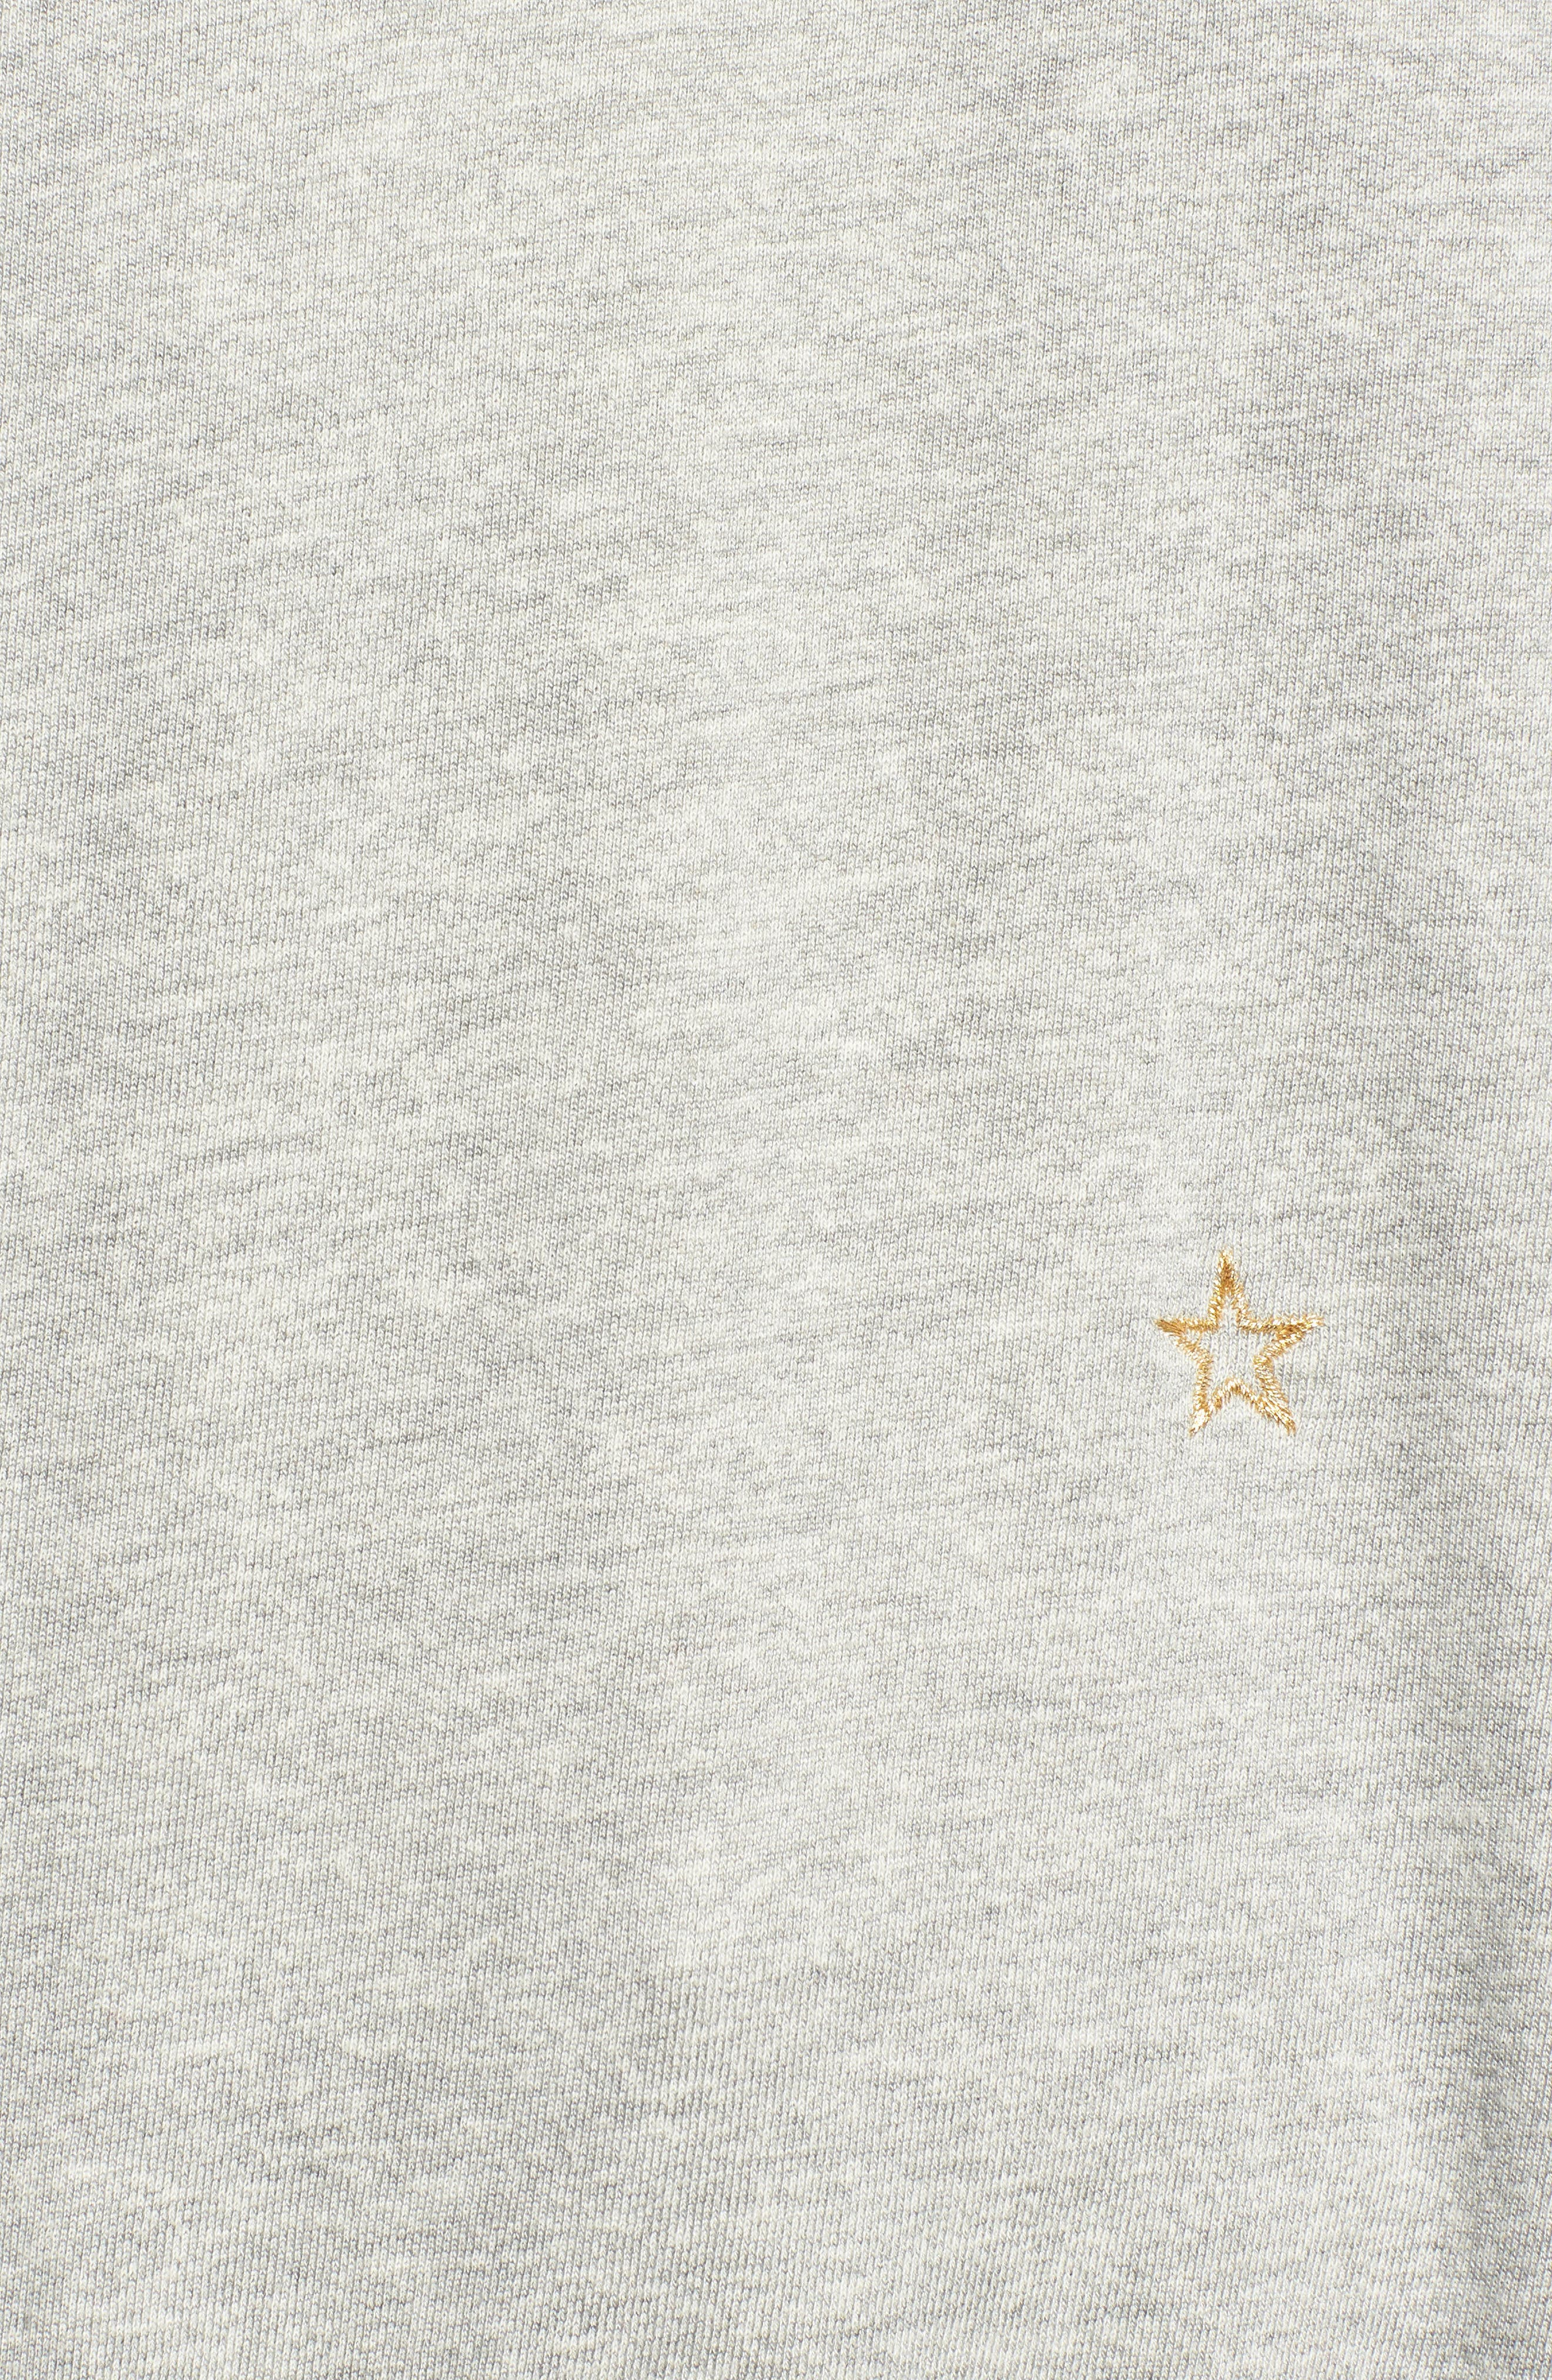 Star Embroidered Sweatshirt,                             Alternate thumbnail 5, color,                             HEATHER GREY